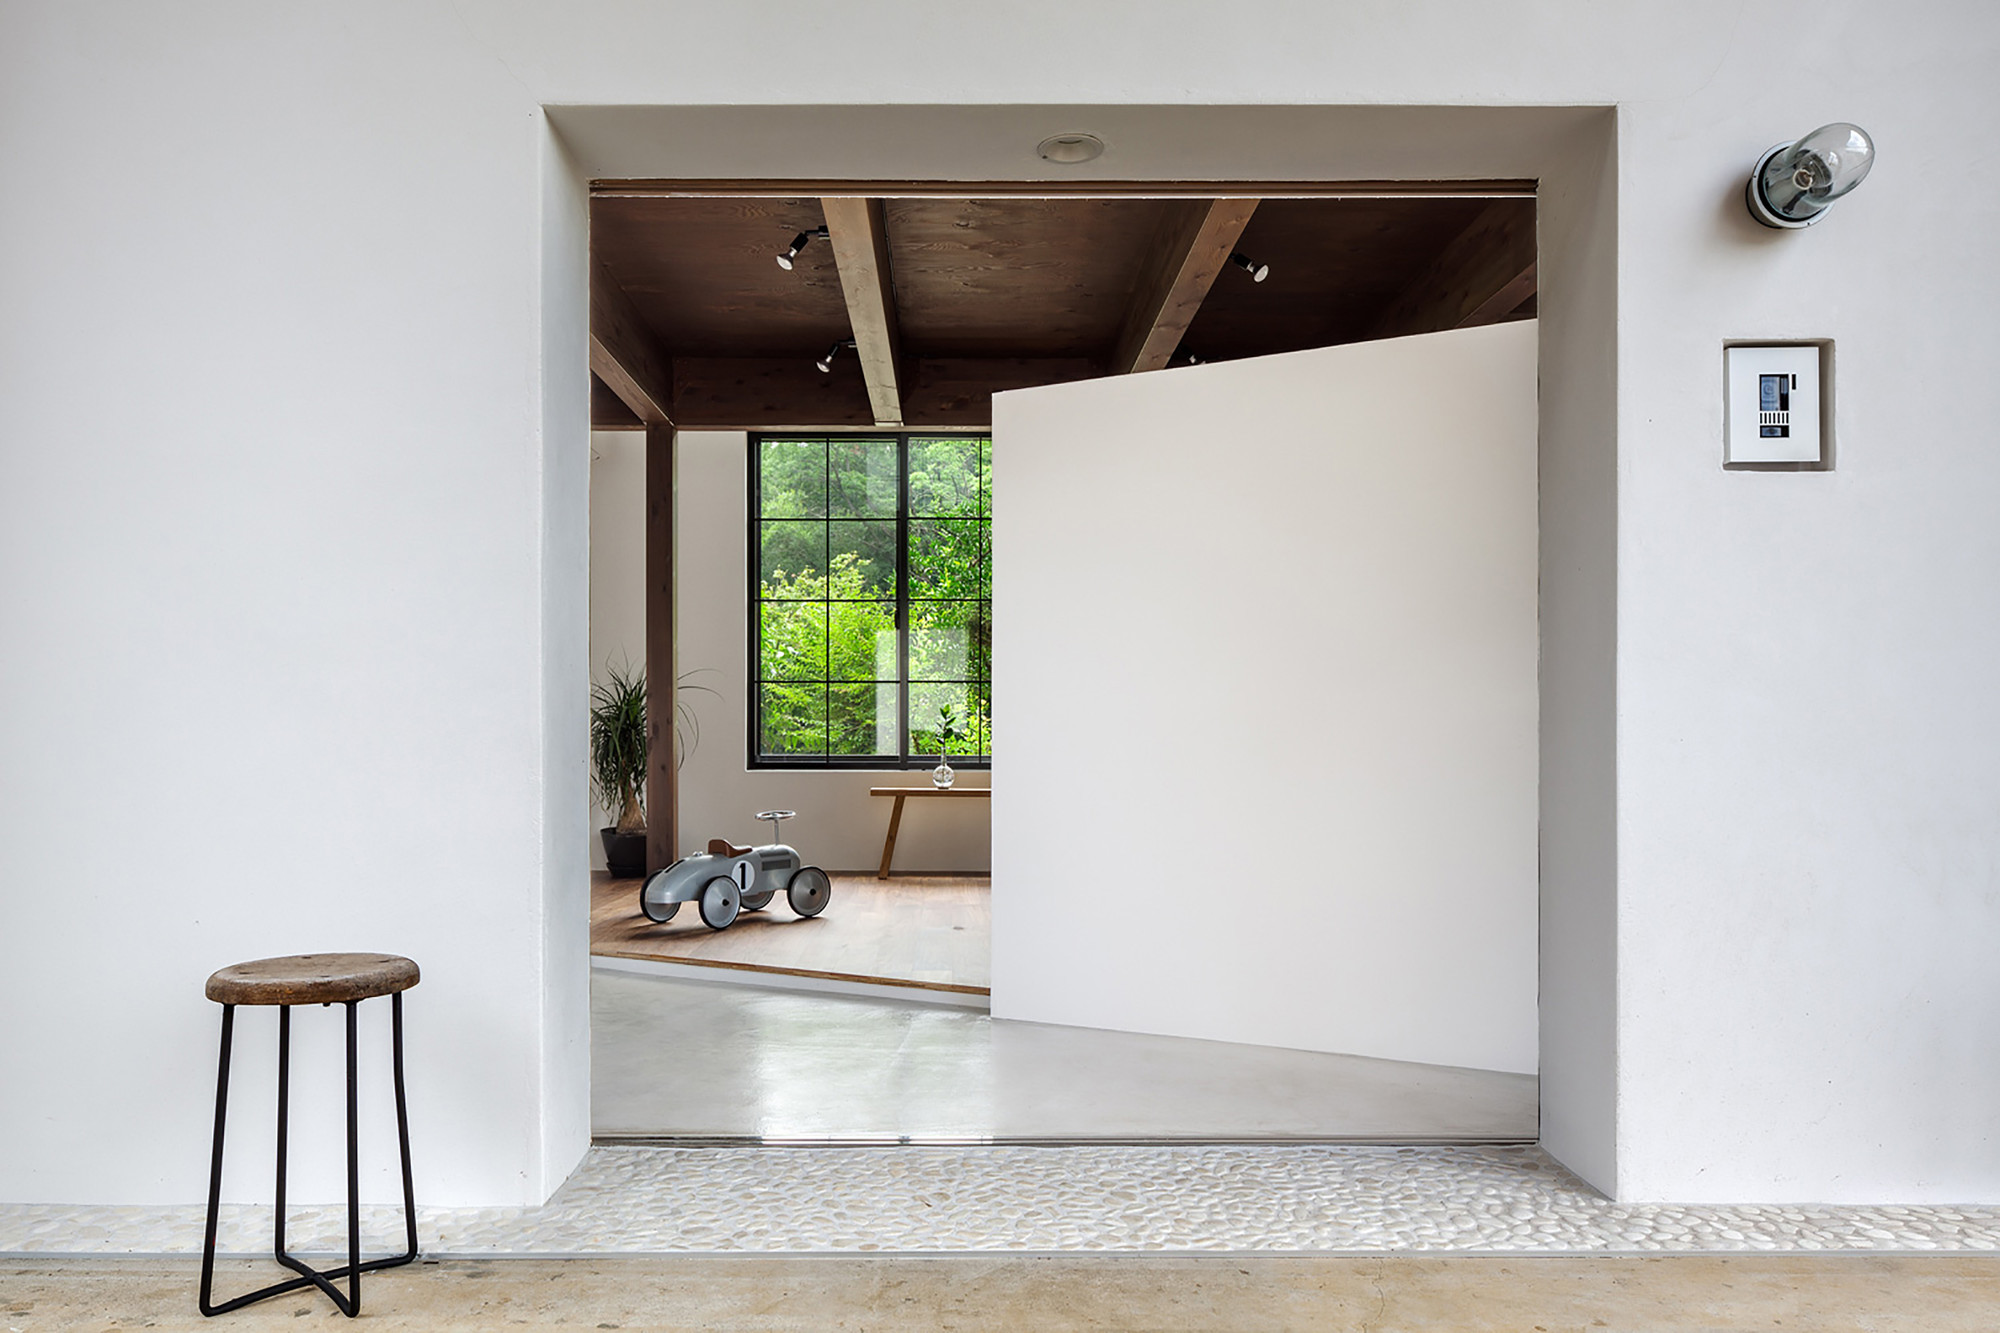 Scandinavian Middle  / Kichi Architectural Design, © Ippei Shinzawa